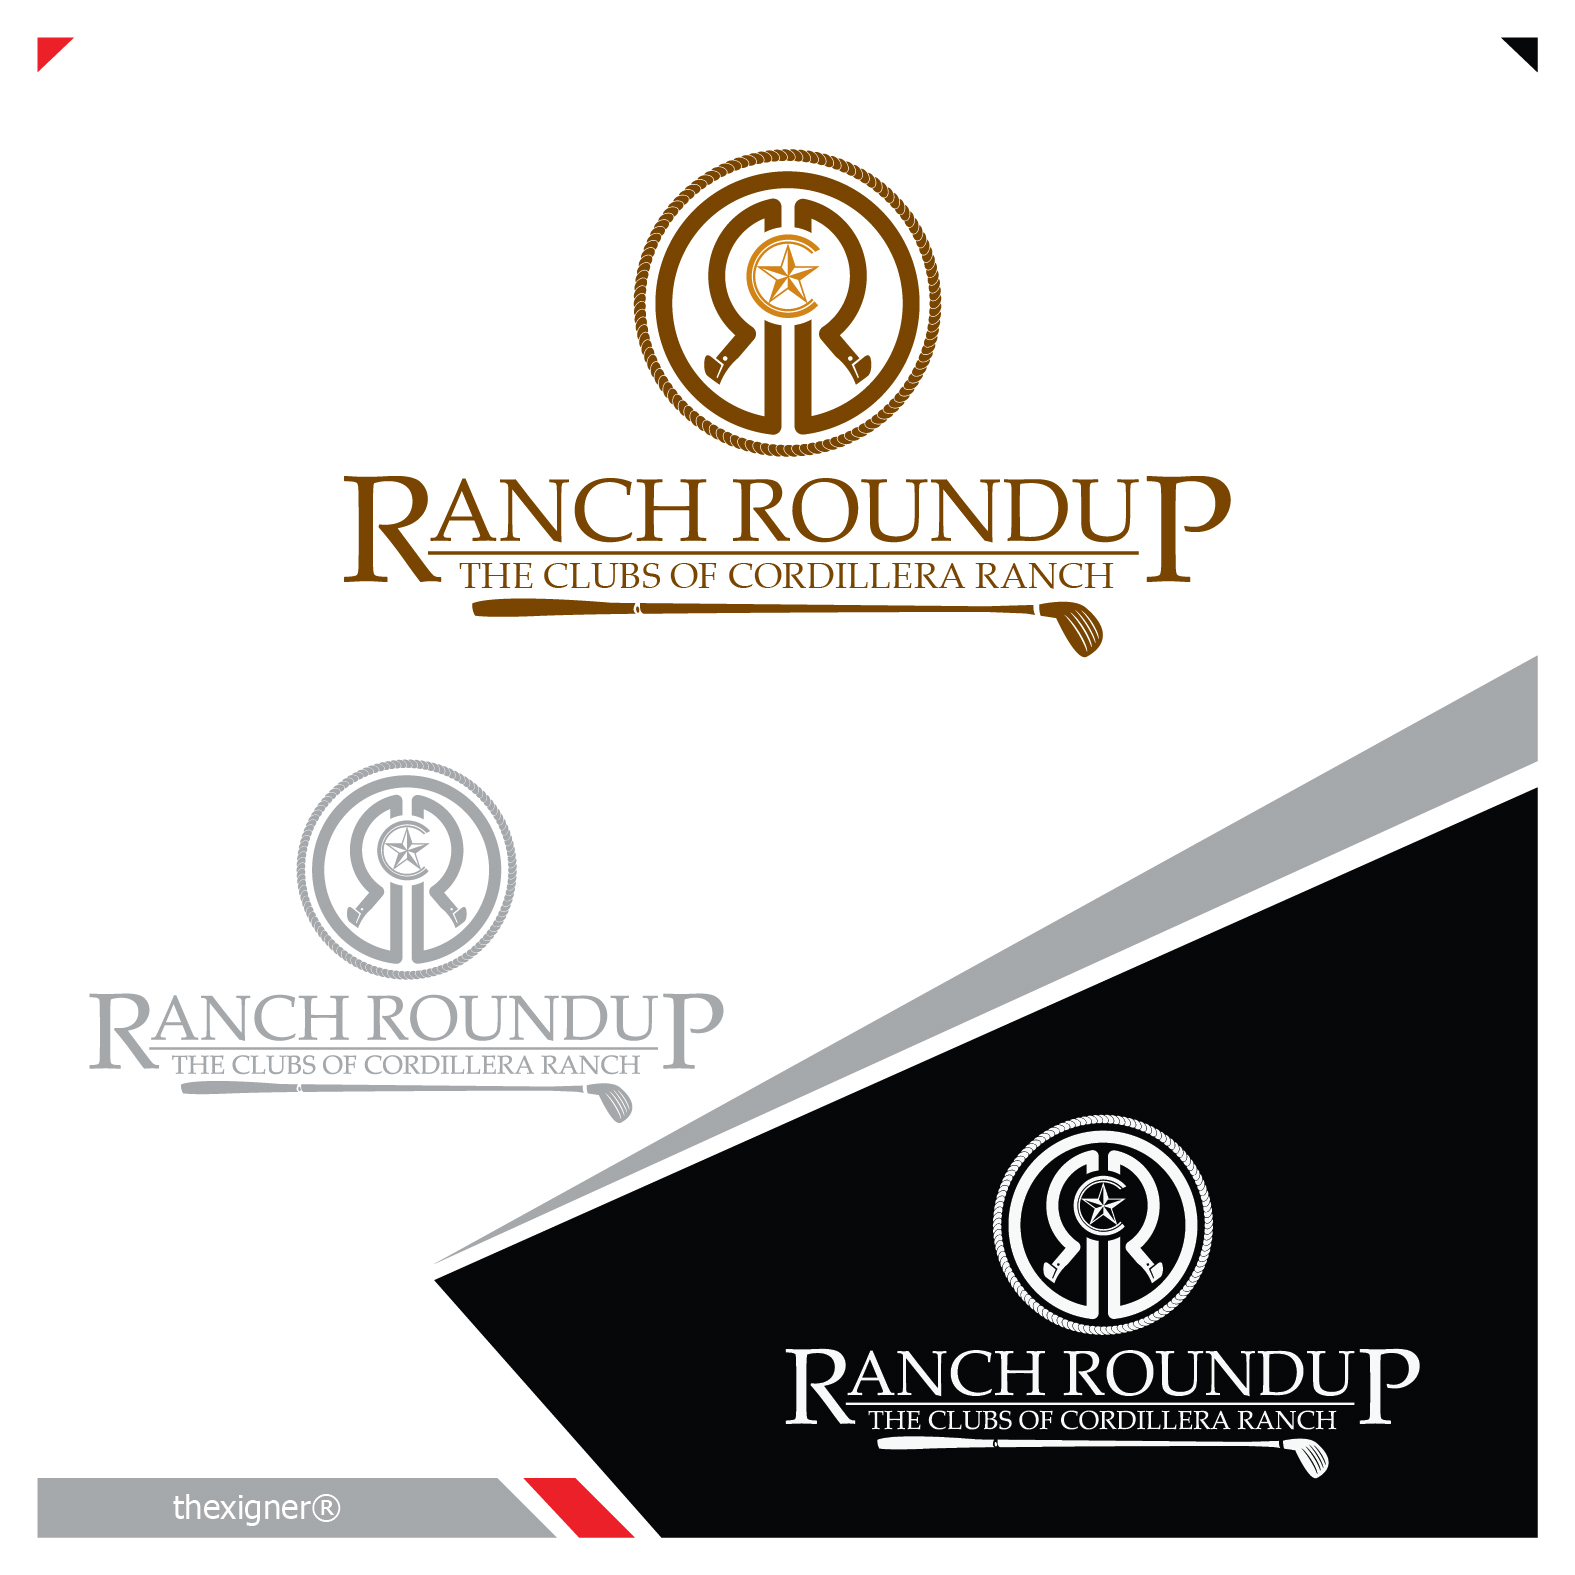 Logo Design by lagalag - Entry No. 24 in the Logo Design Contest Captivating Logo Design for Ranch Roundup.